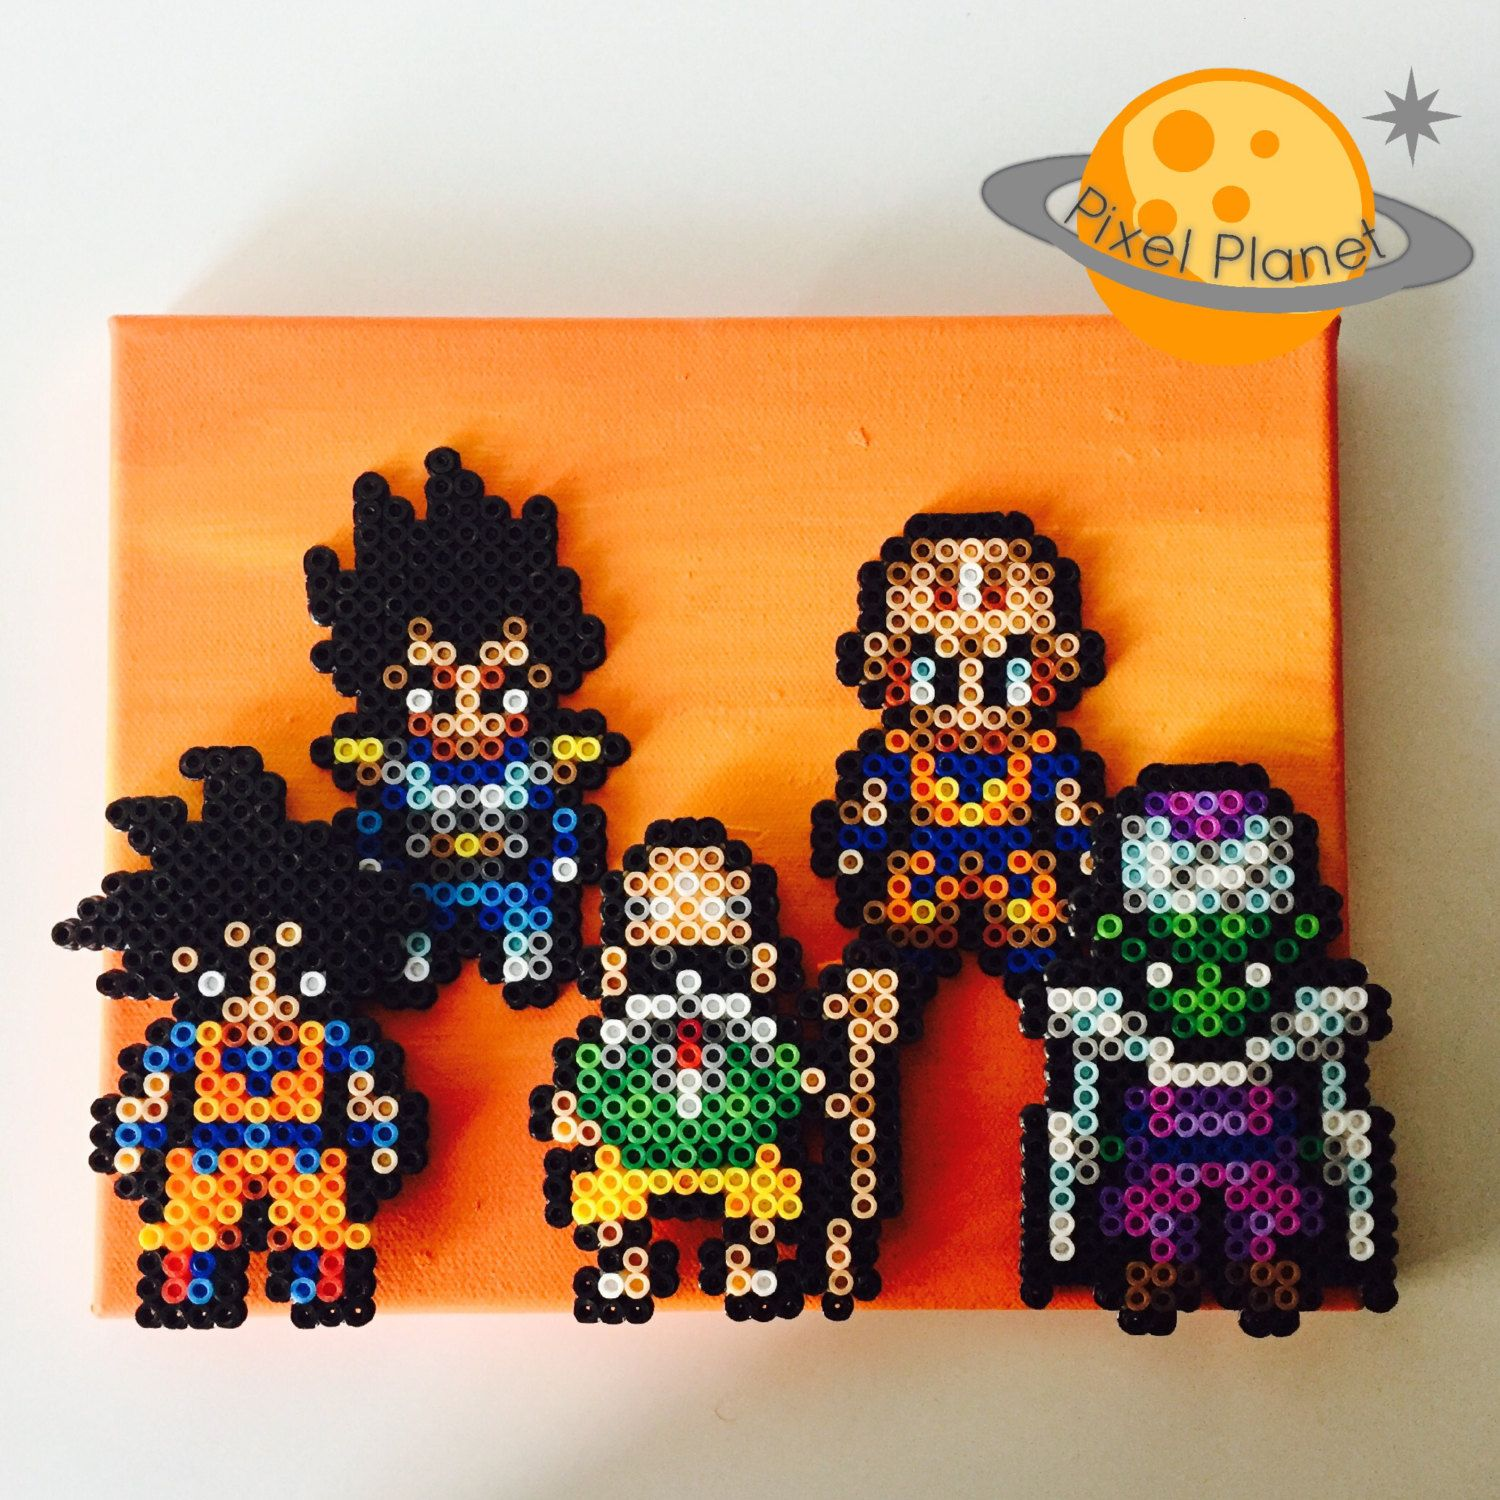 Dragonball Perler Beads Sprite On Canvas With Painted Background